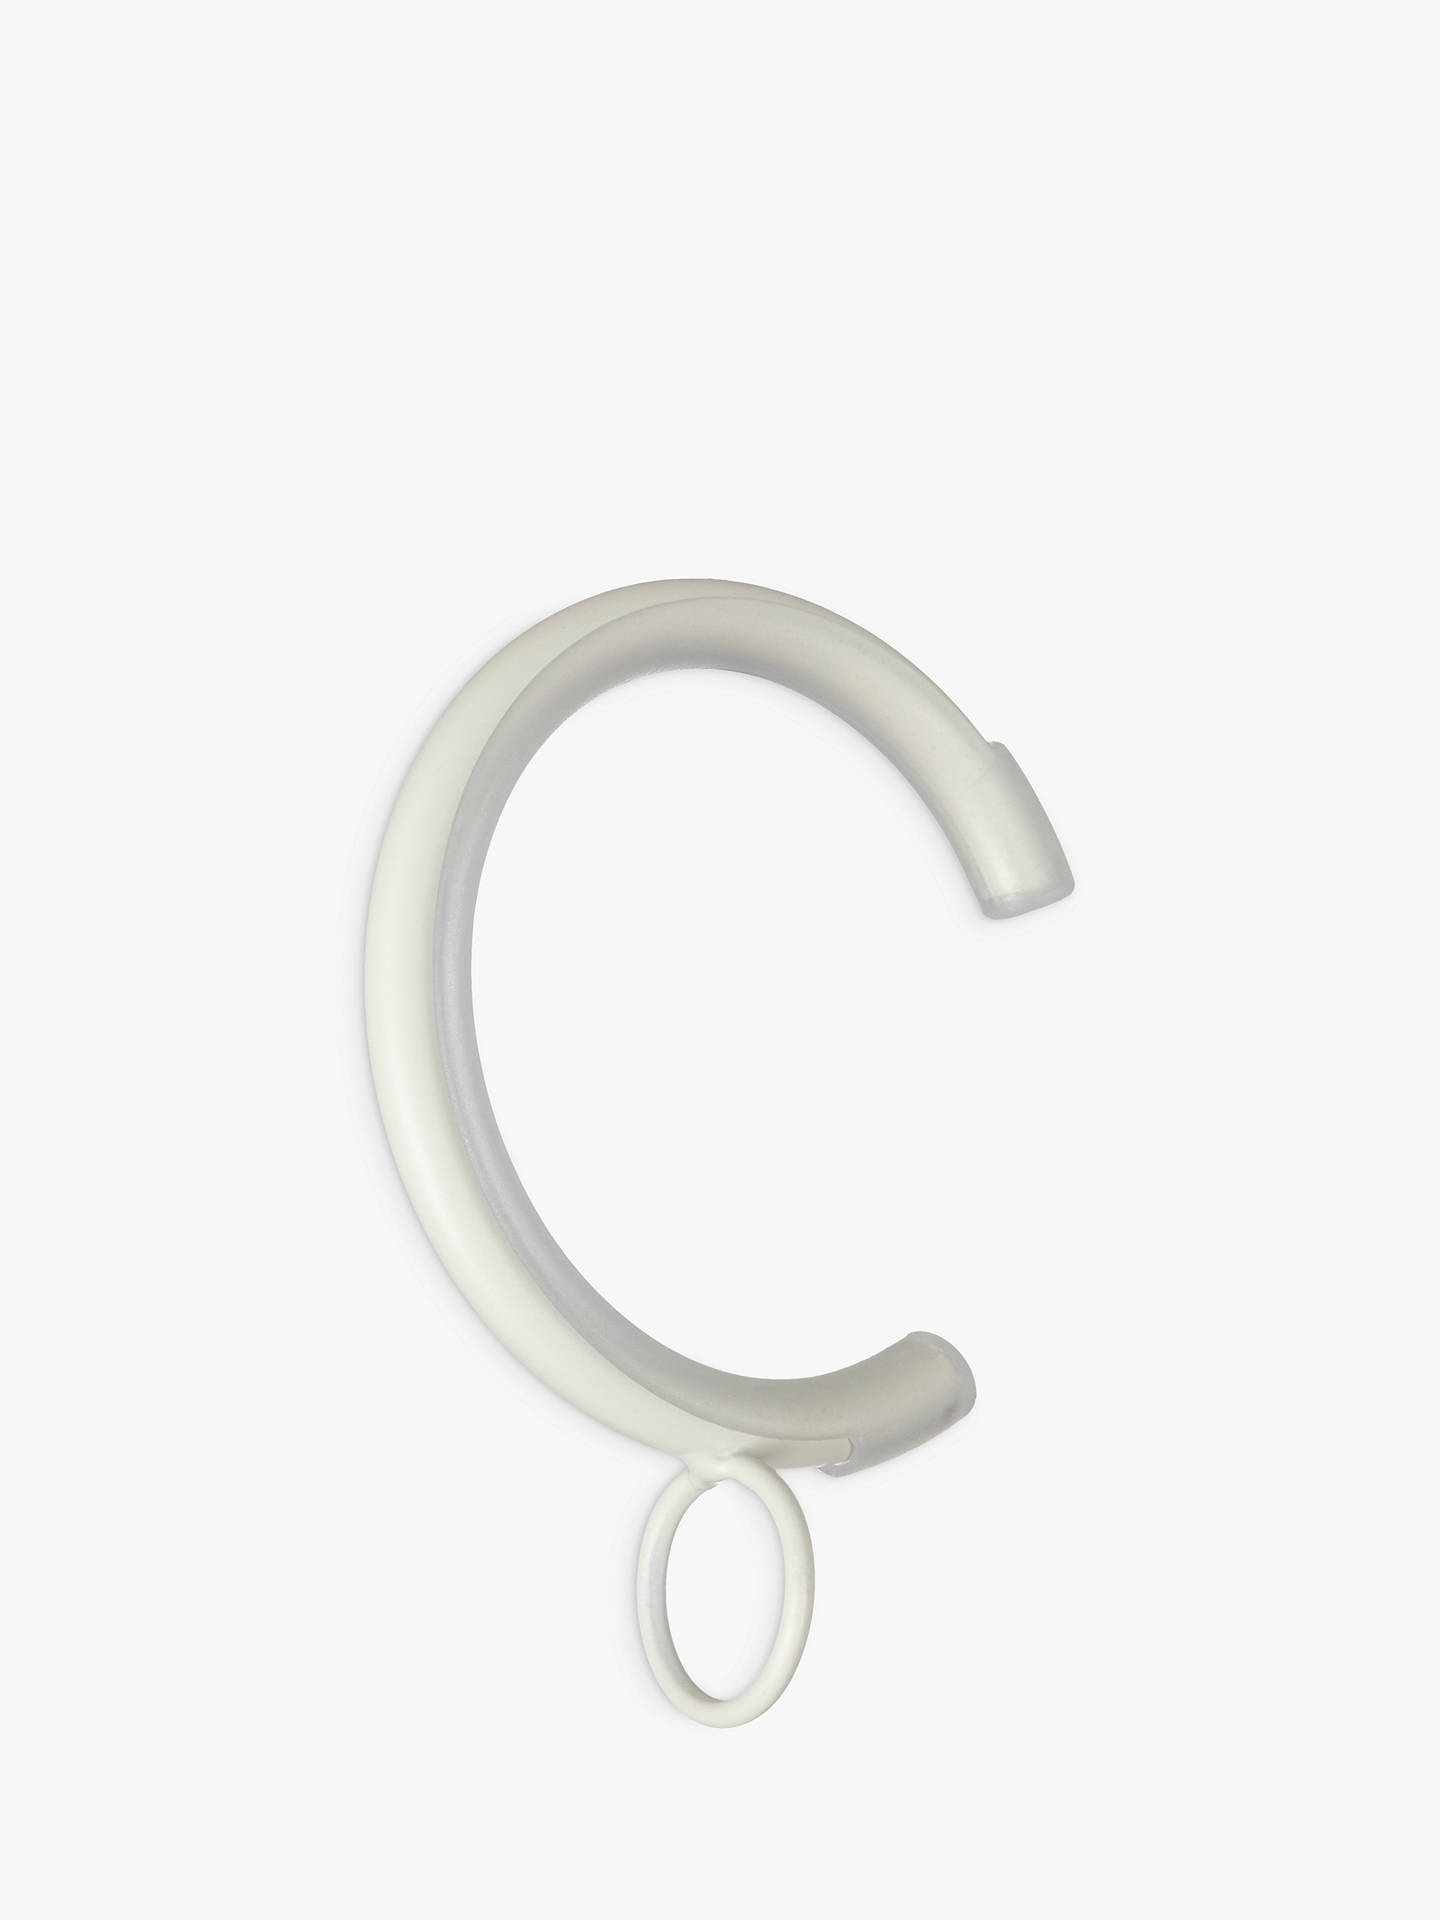 BuyJohn Lewis & Partners Chalk White Metal Passing Rings, Dia.25mm, Set of 6 Online at johnlewis.com